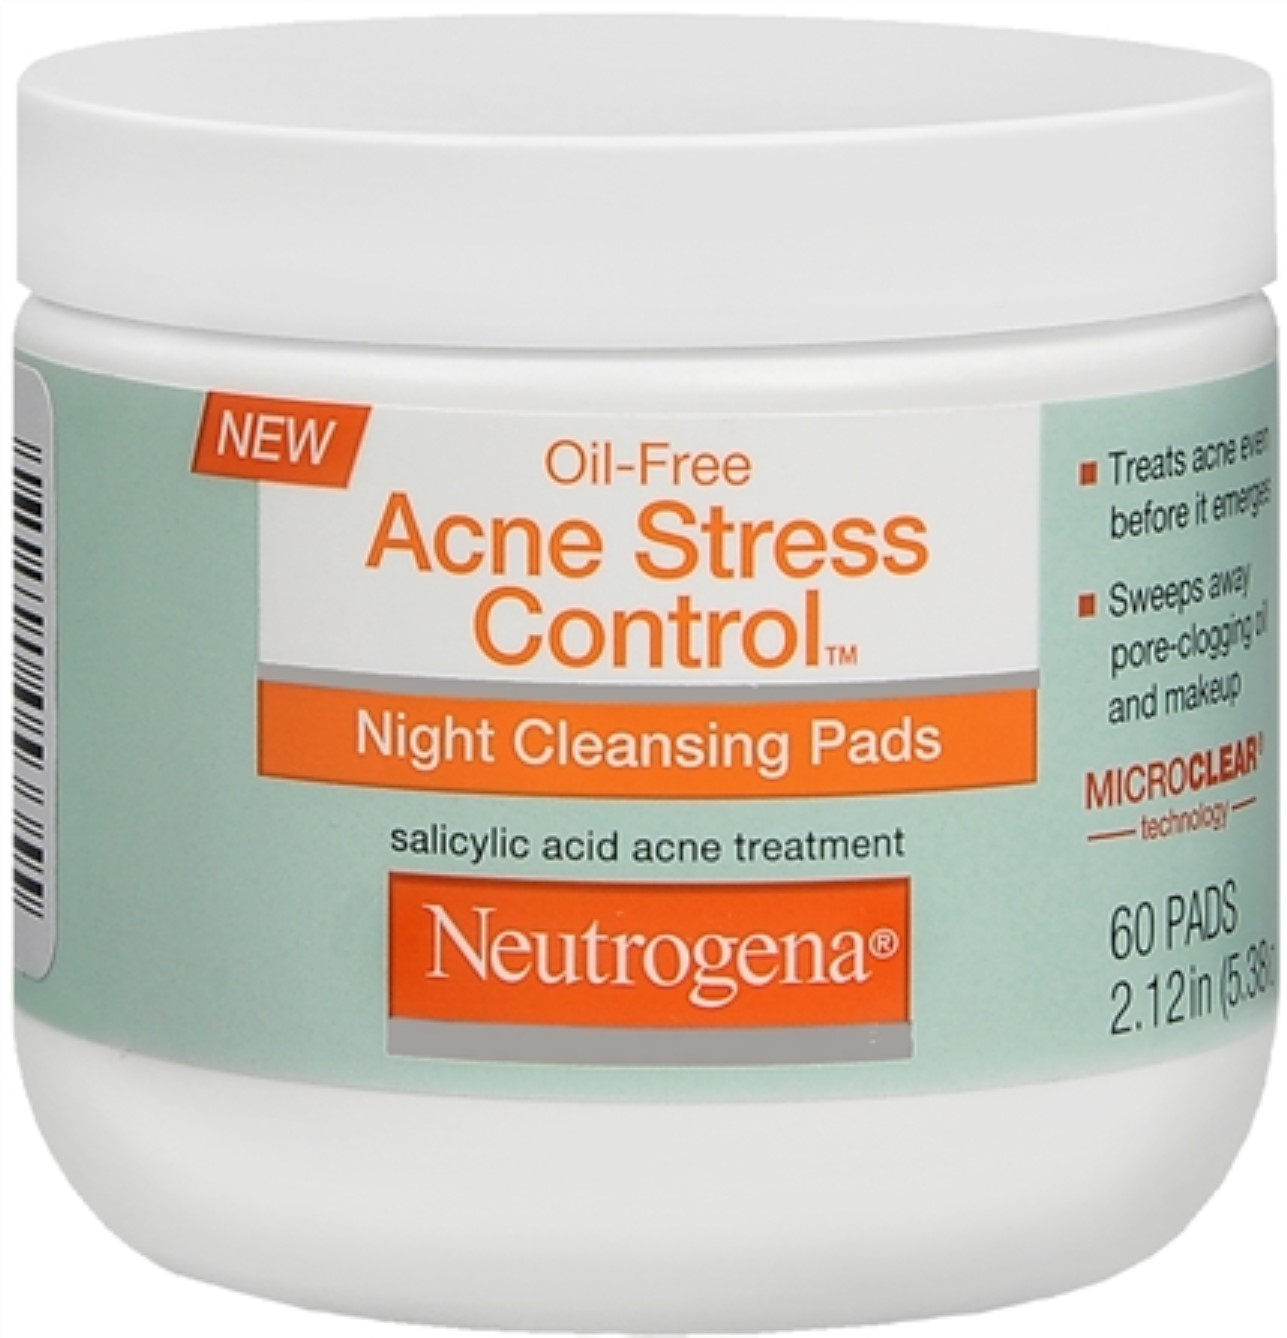 Neutrogena Acne Stress Control Night Cleansing Pads 60 Each (Pack of 2)